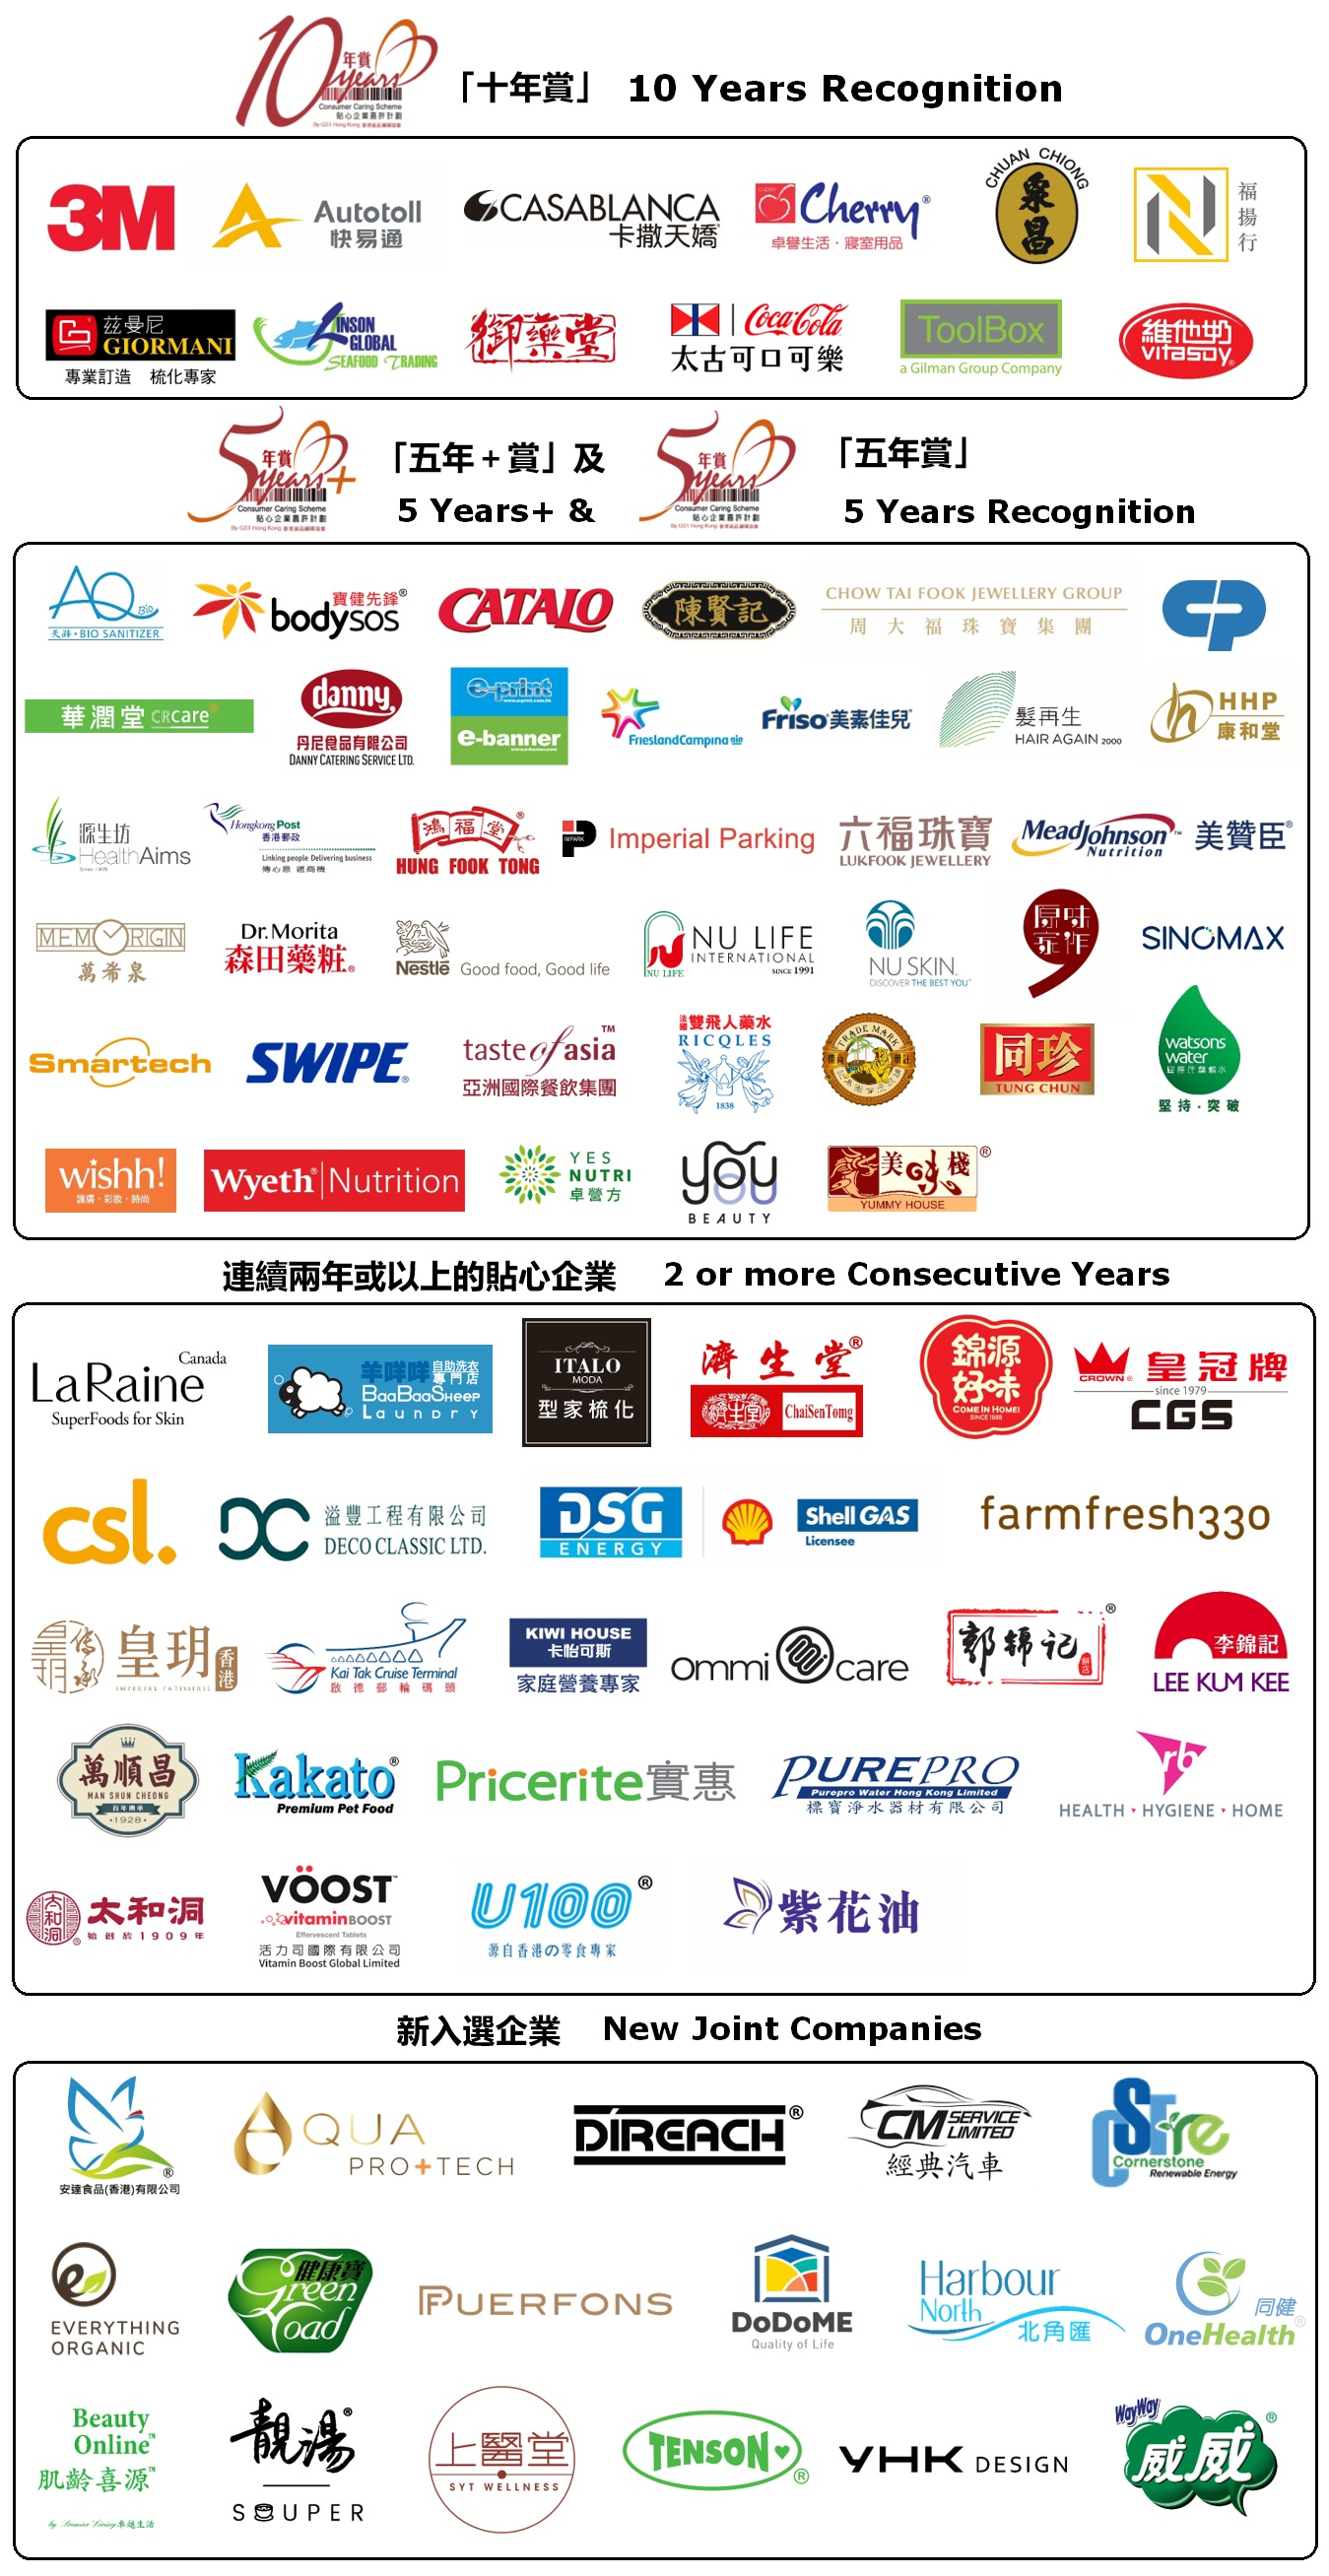 More than 90 Local Enterprises Recognised by GS1 Hong Kongs Consumer Caring Scheme 2020